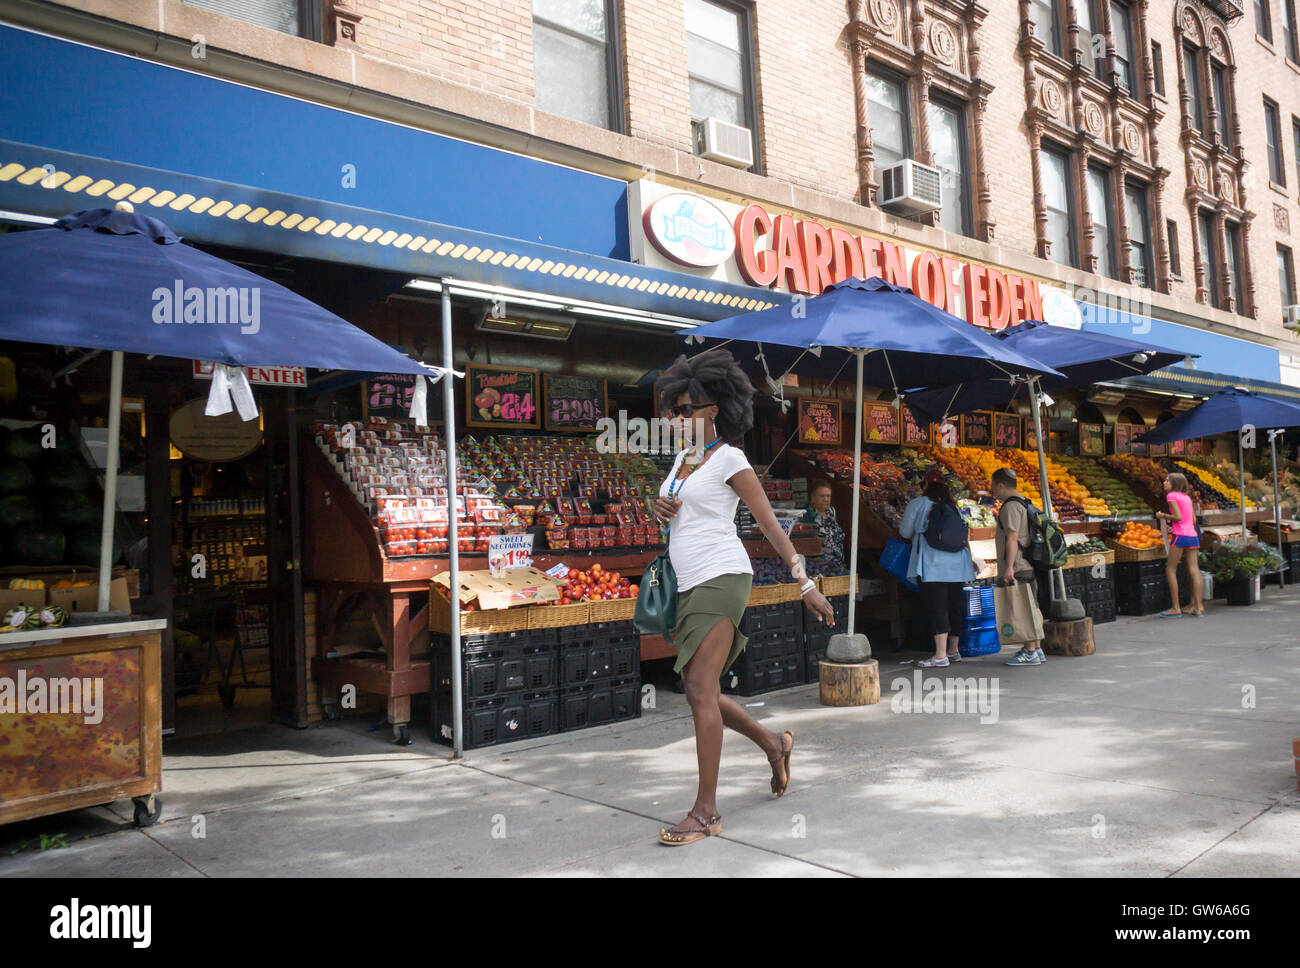 https www alamy com stock photo a store of the local supermarket chain garden of eden in new york 118768344 html